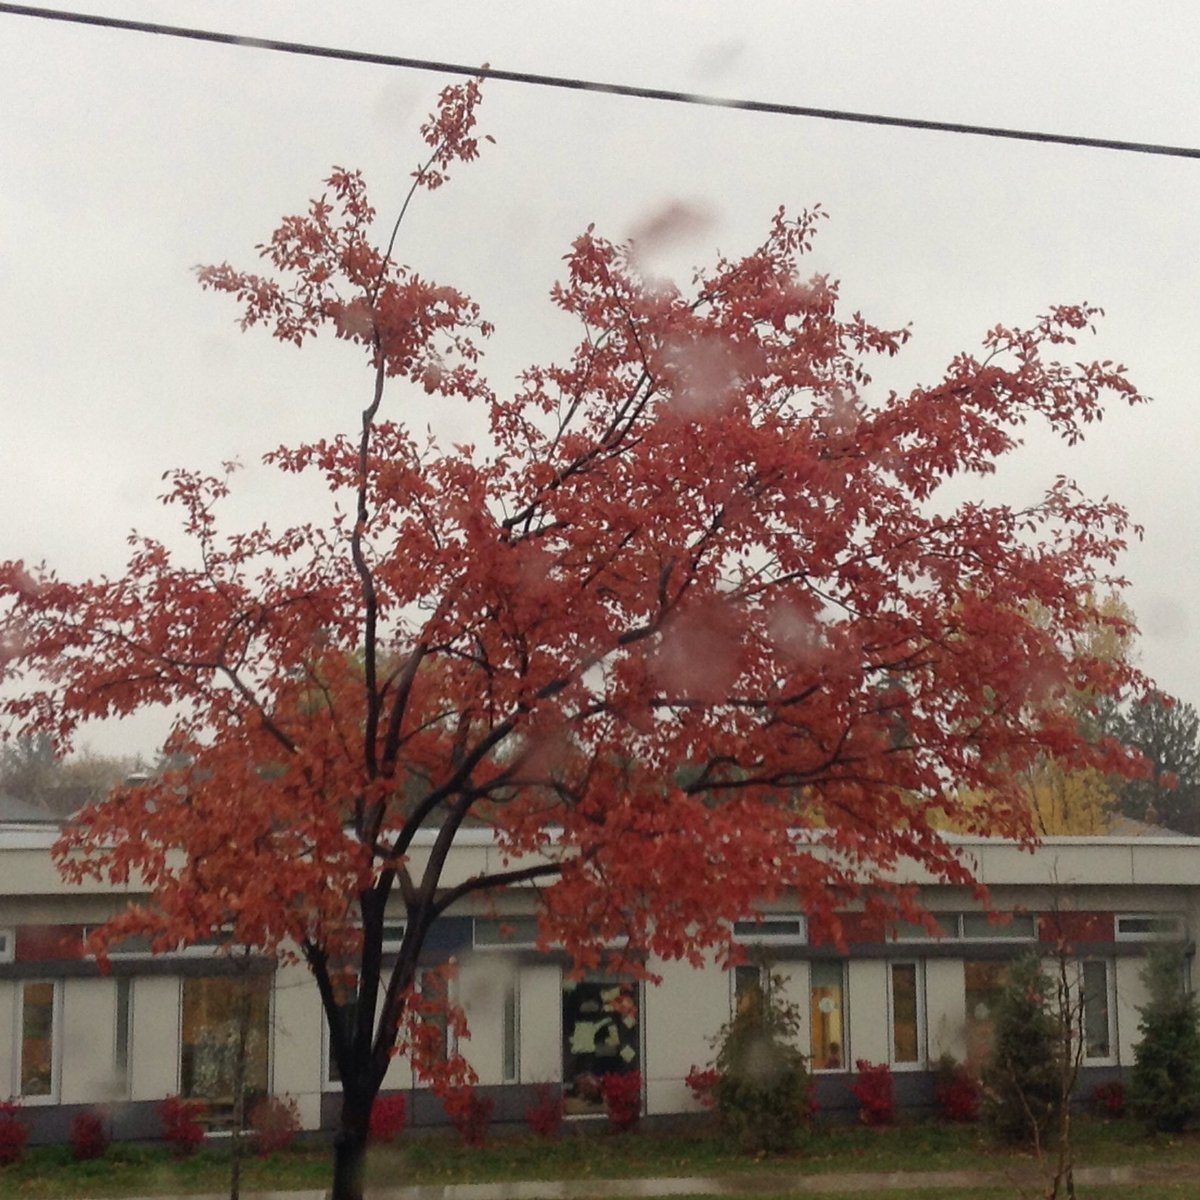 red leafed tree in rainstorm